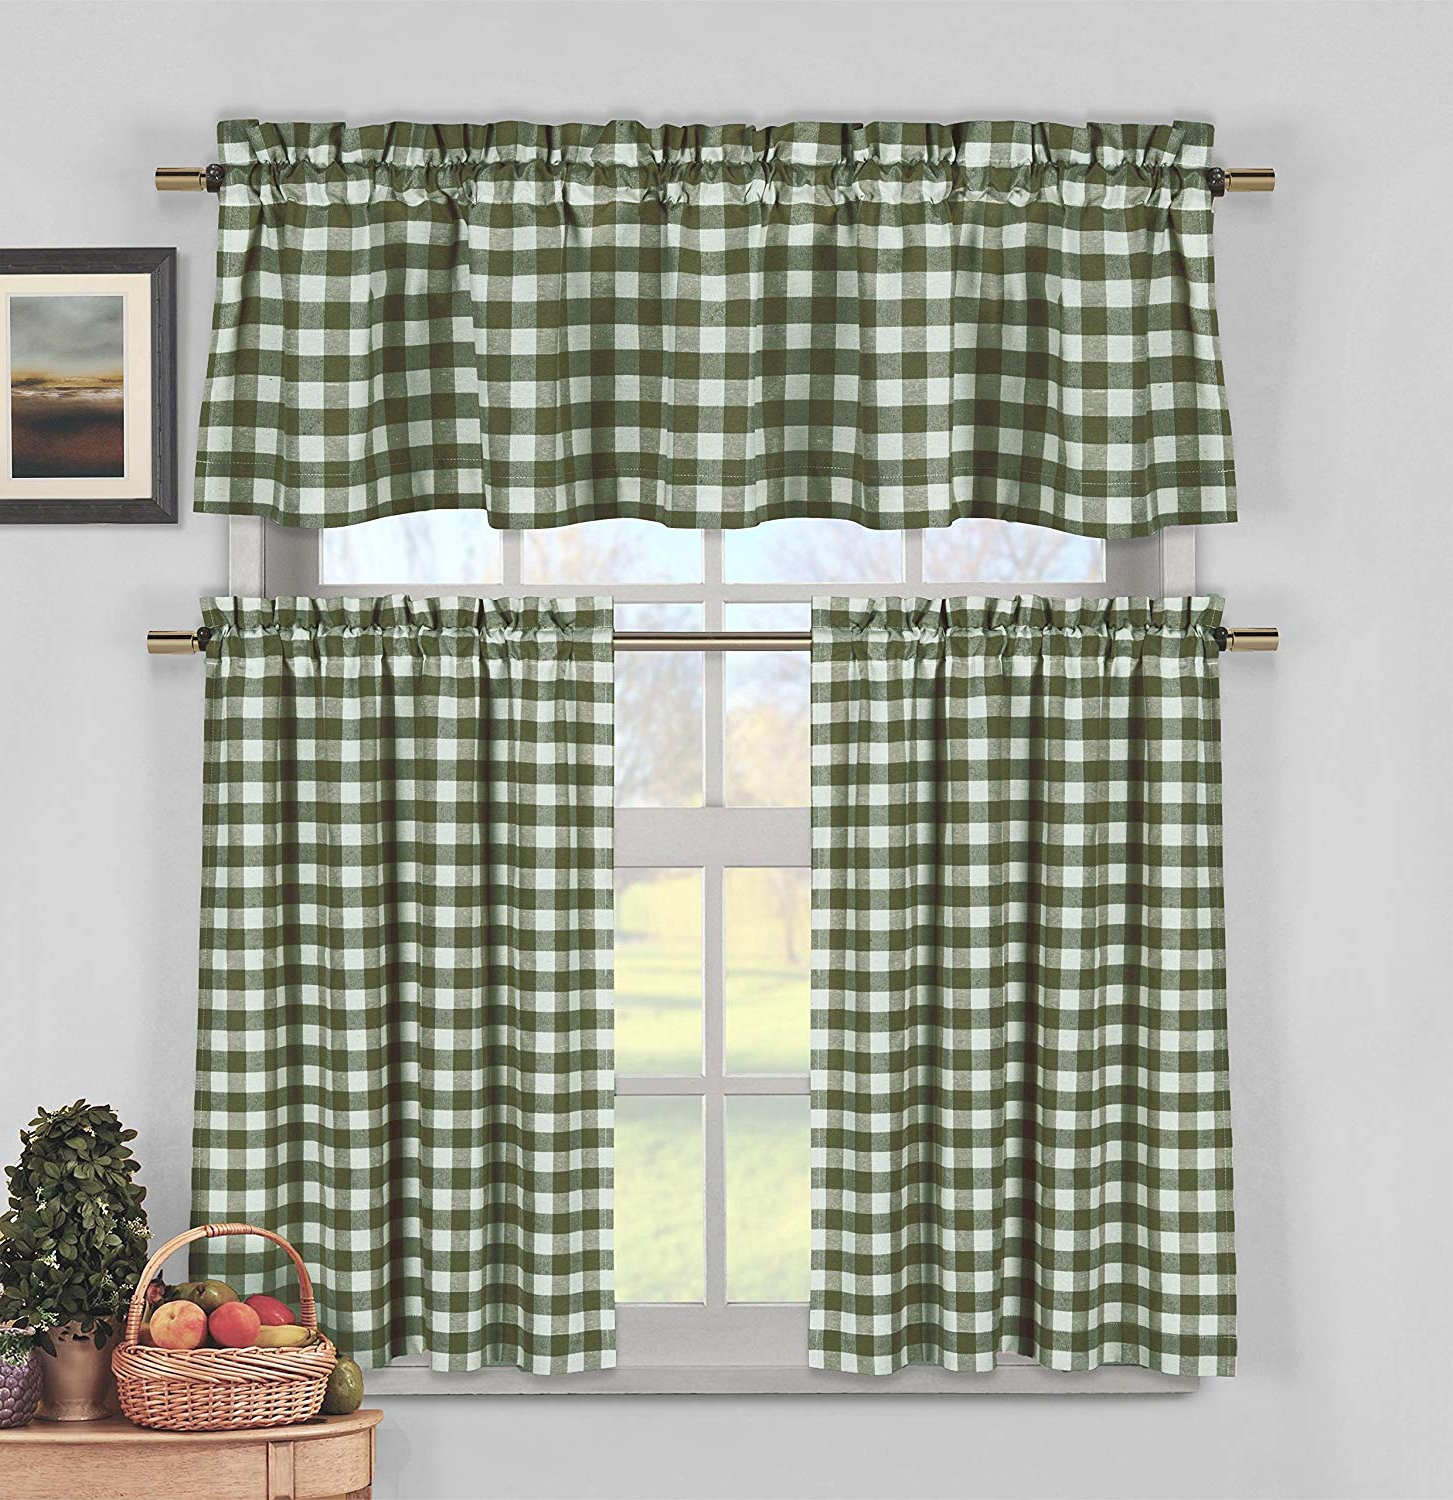 Lodge Plaid 3 Piece Kitchen Curtain Tier And Valance Sets Throughout Well Known Sage Green 3 Piece Gingham Check Kitchen Window Curtain Set: Plaid, Cotton  Rich, 1 Valance, 2 Tier Panels (Matching 3 Piece Window Curtain Set) (Gallery 4 of 20)